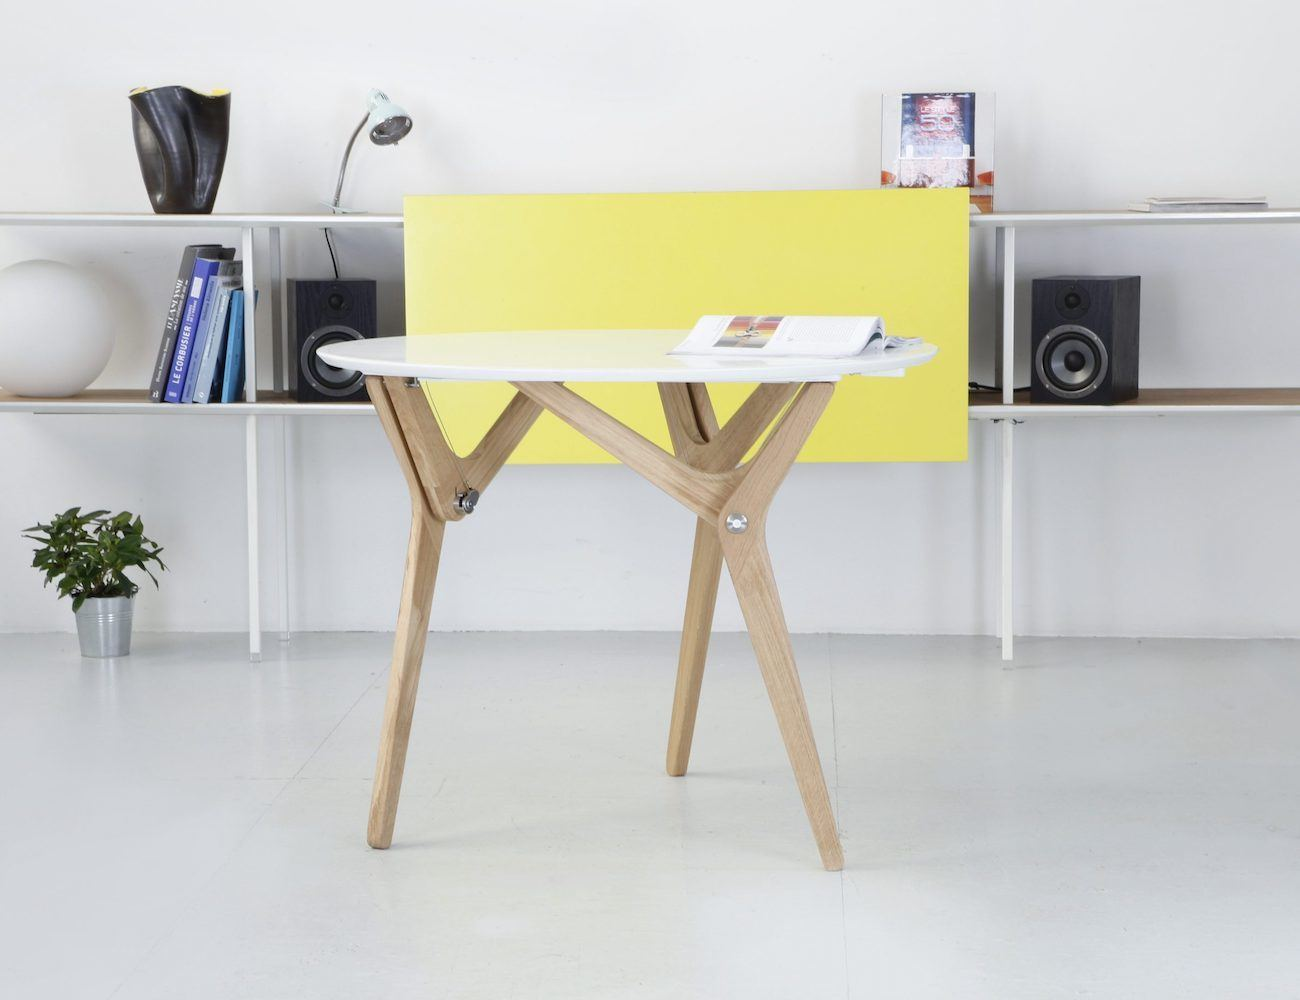 BOULON+BLANC+Transformable+Table